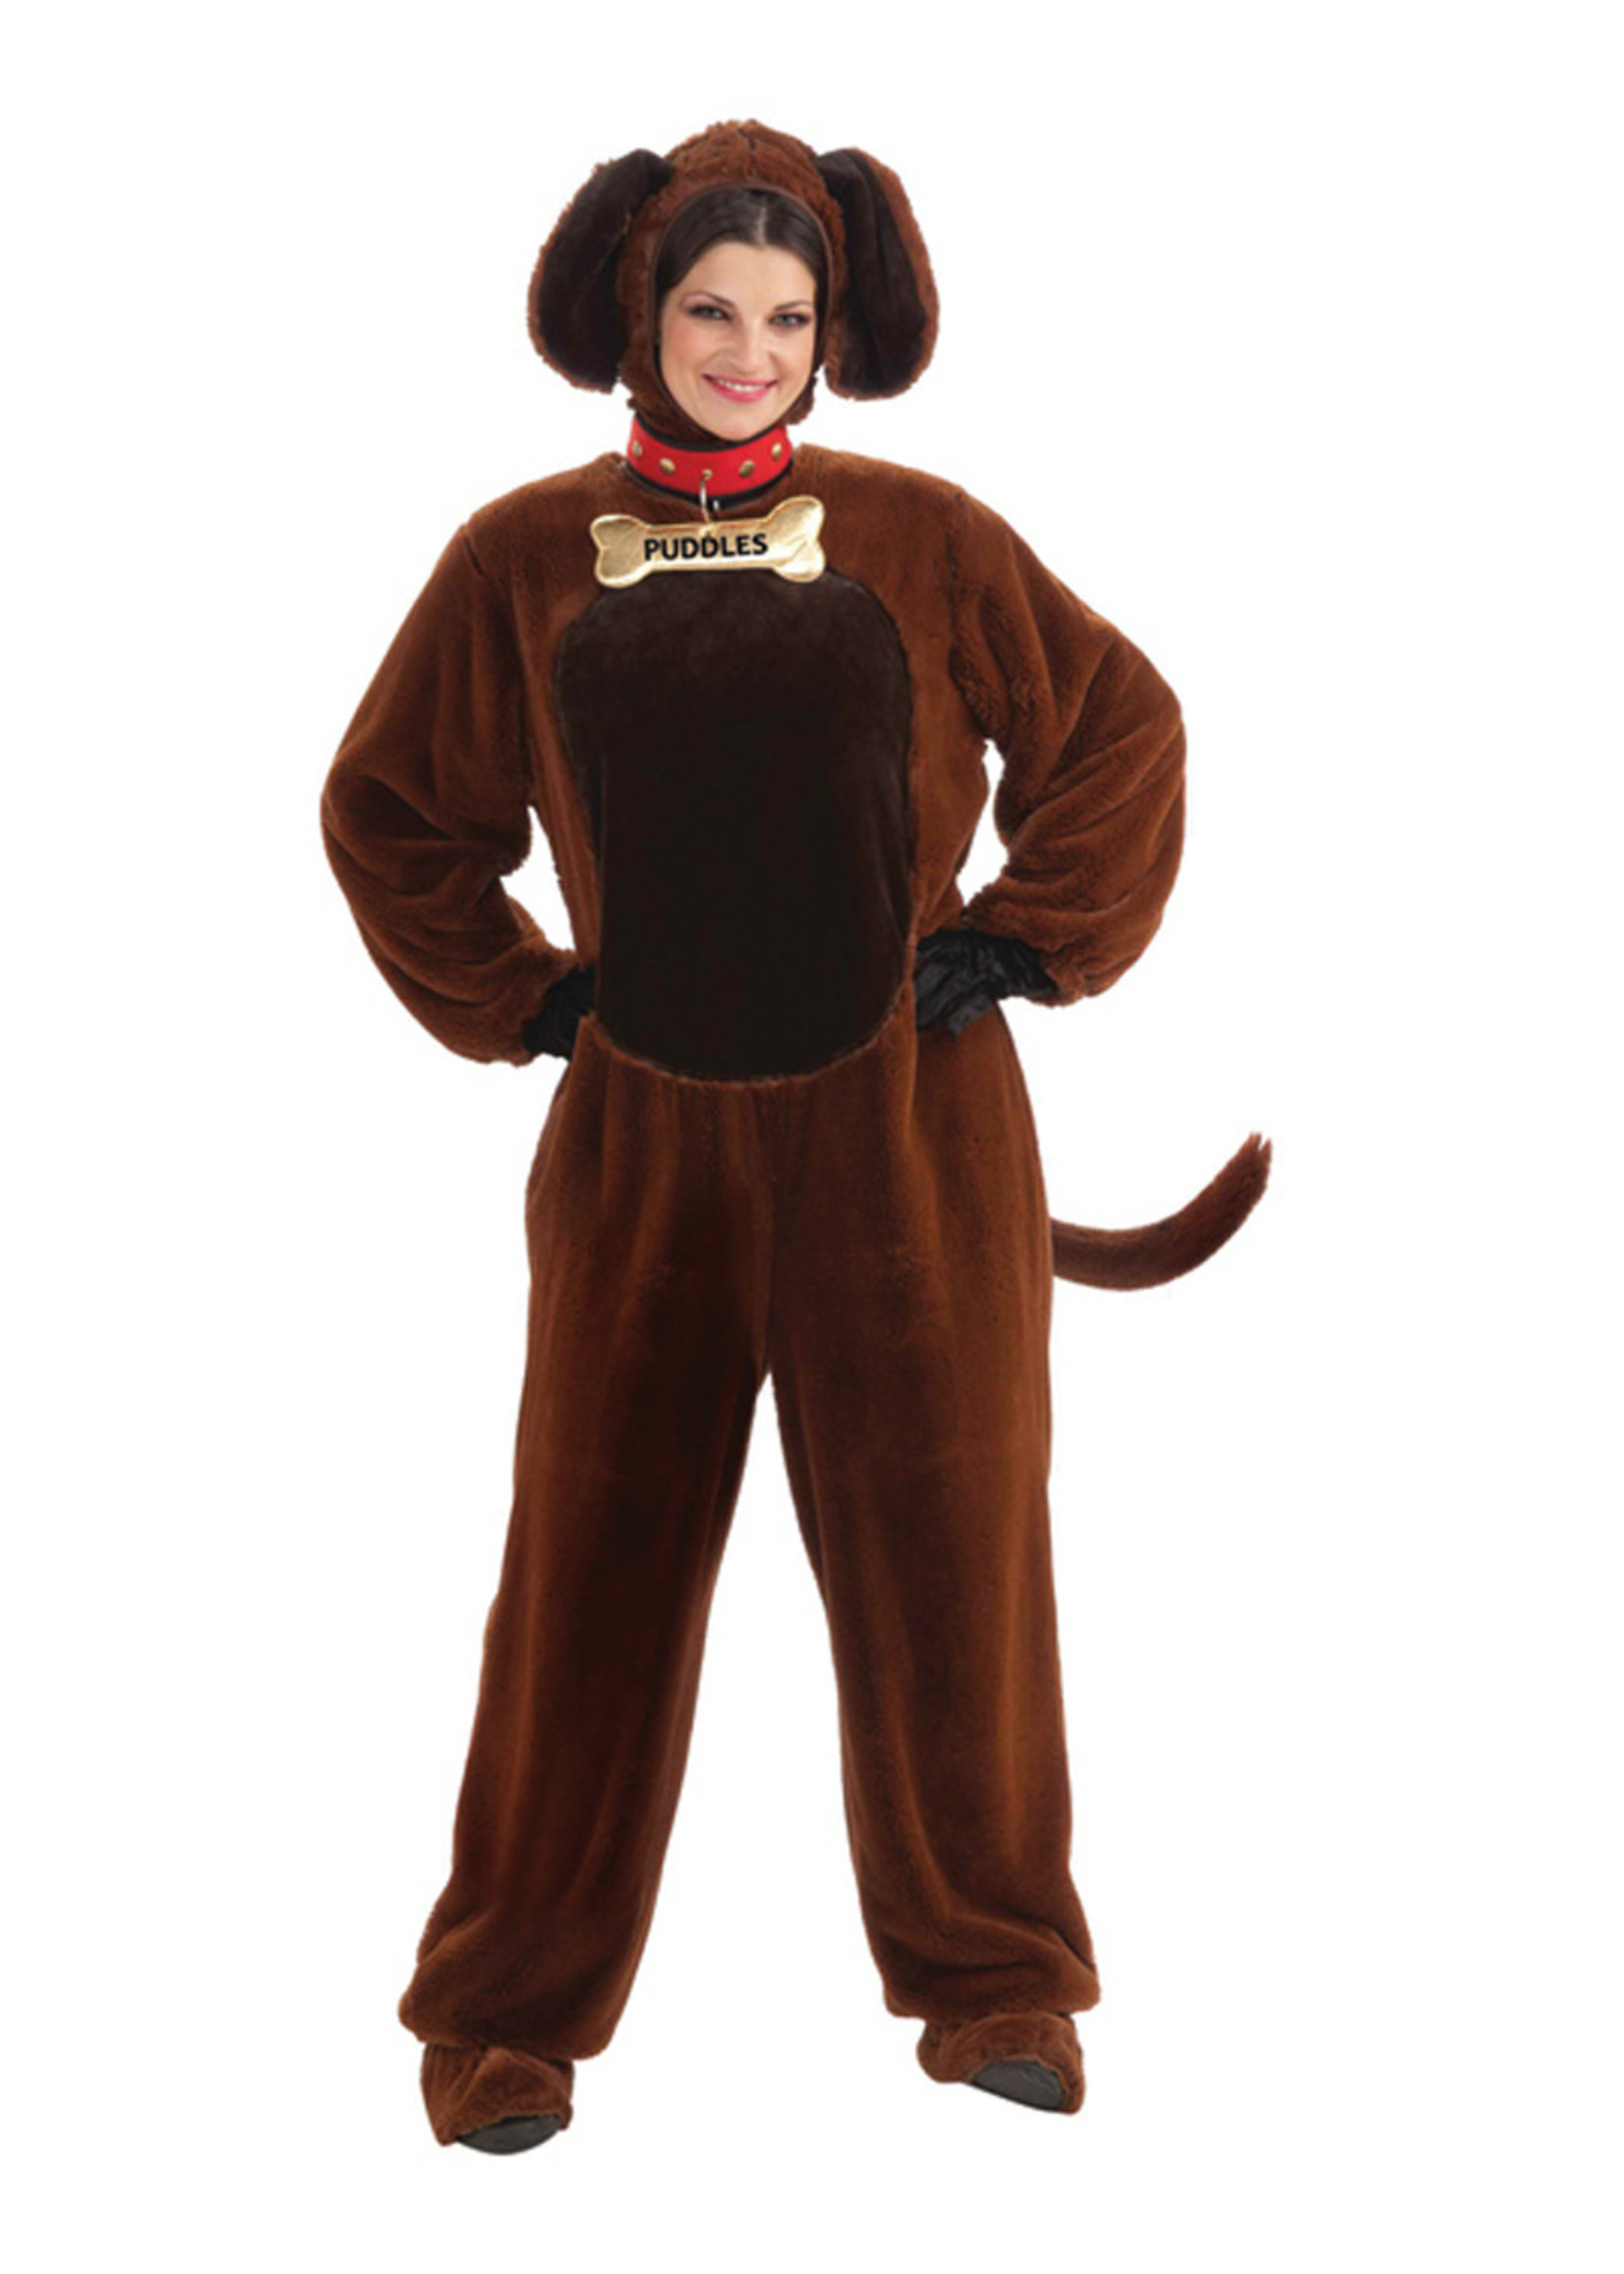 Puddles the Puppy Costume - Humor